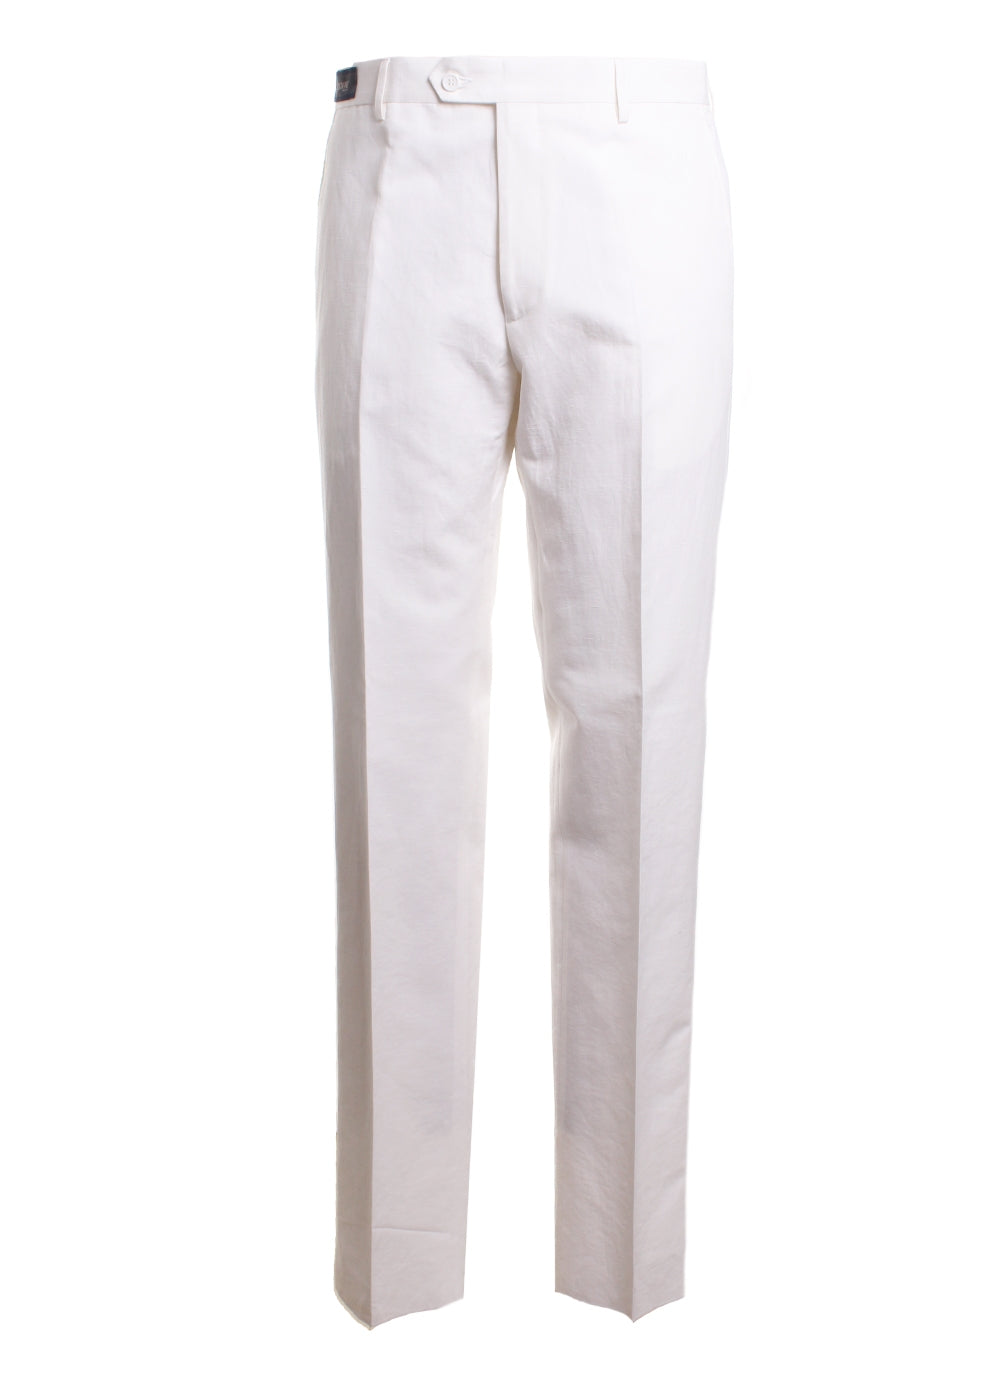 Linen Straight Leg Trousers Pants in White